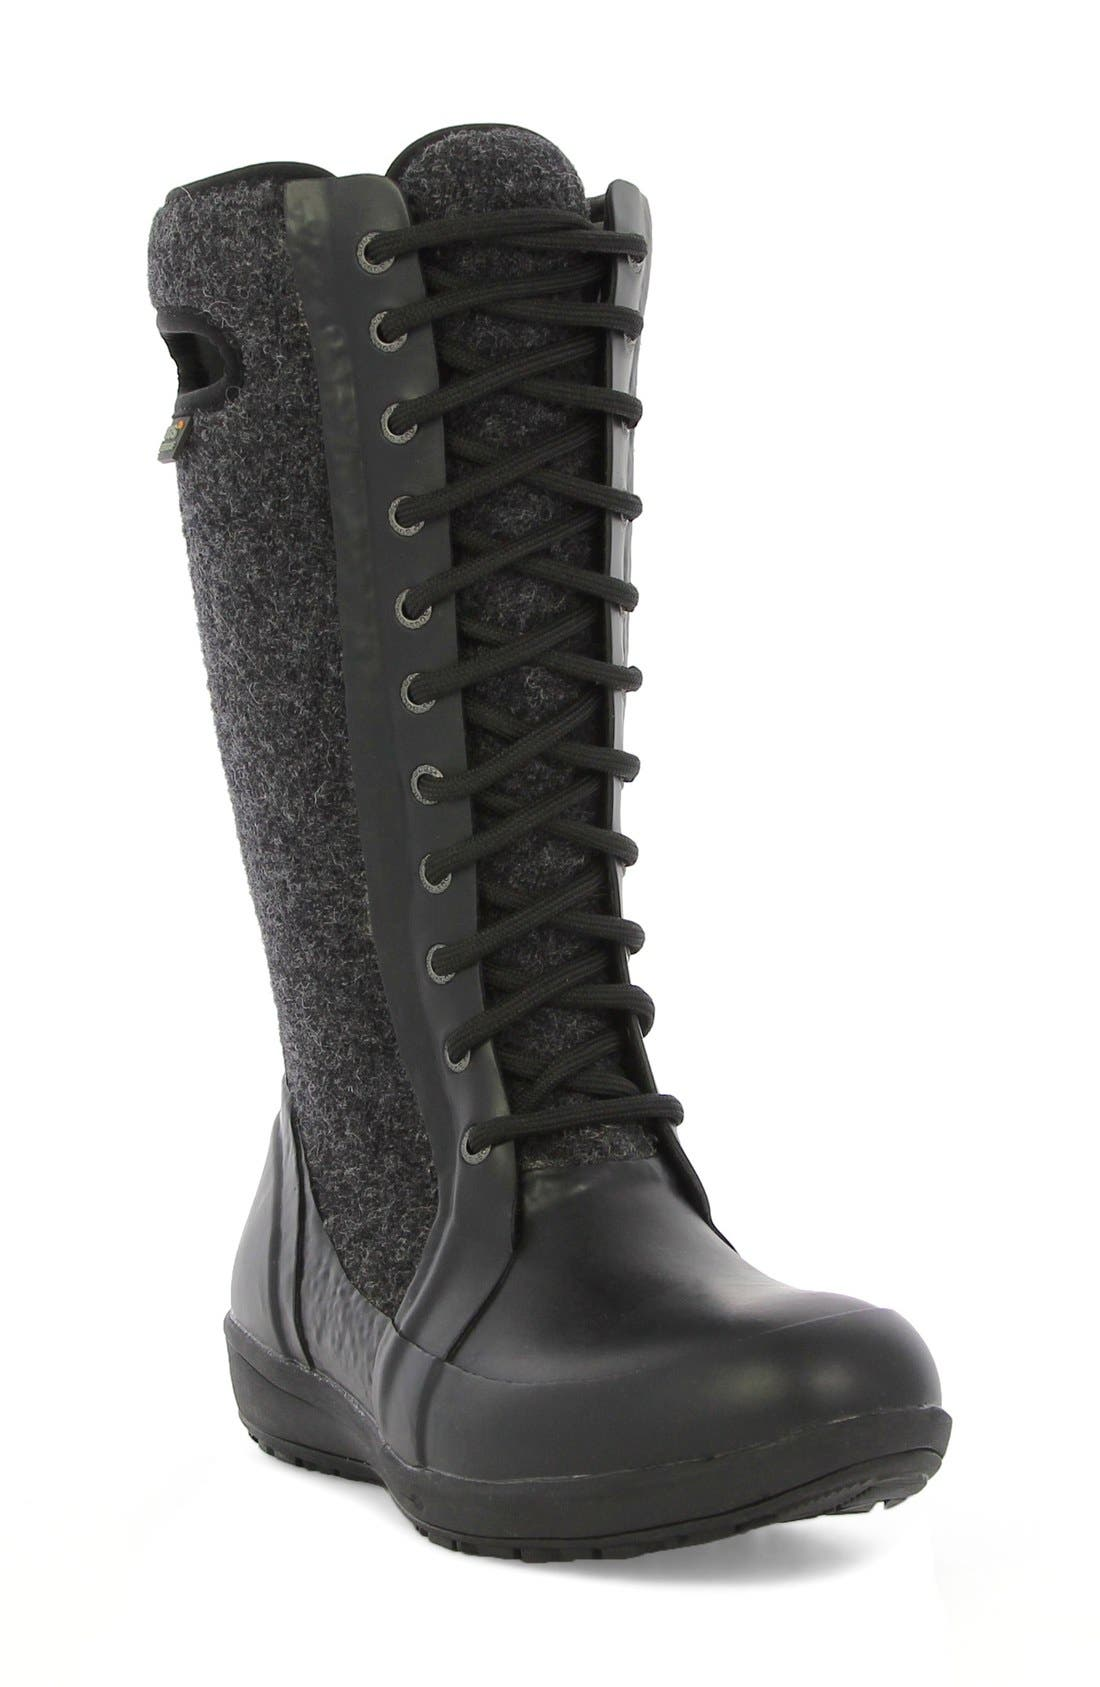 'Cami' Knee High Waterproof Boot,                             Main thumbnail 1, color,                             Black Multi Wool